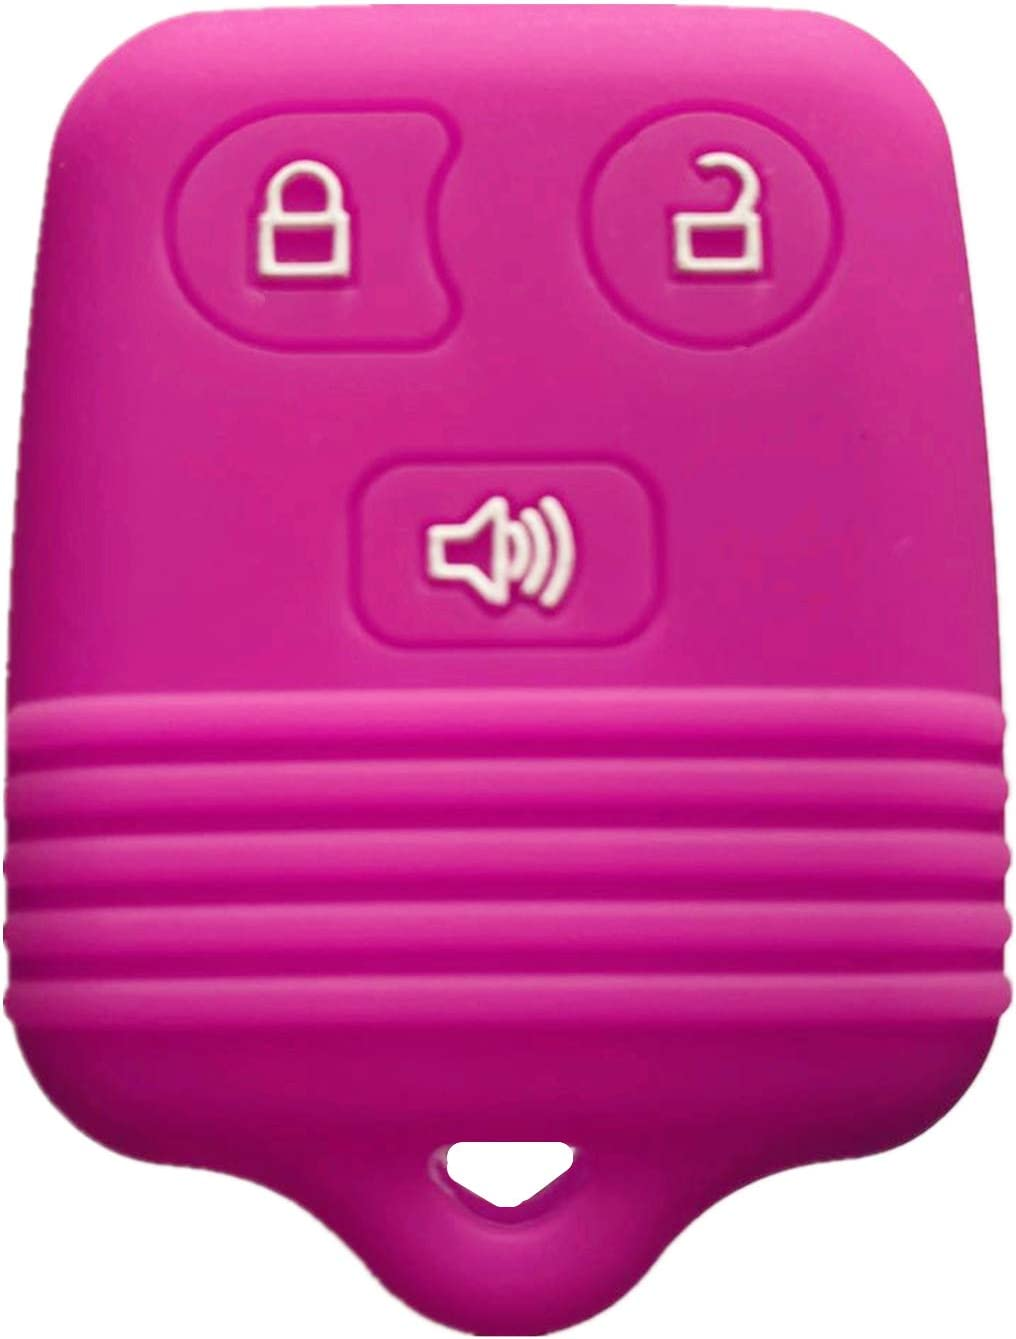 Rpkey Silicone Keyless Entry Remote Control Key Fob Cover Case protector For Ford Lincoln Mercury Mazda CWTWB1U331 GQ43VT11T CWTWB1U345 8L3Z15K601B 8L-3Z-15K-601B